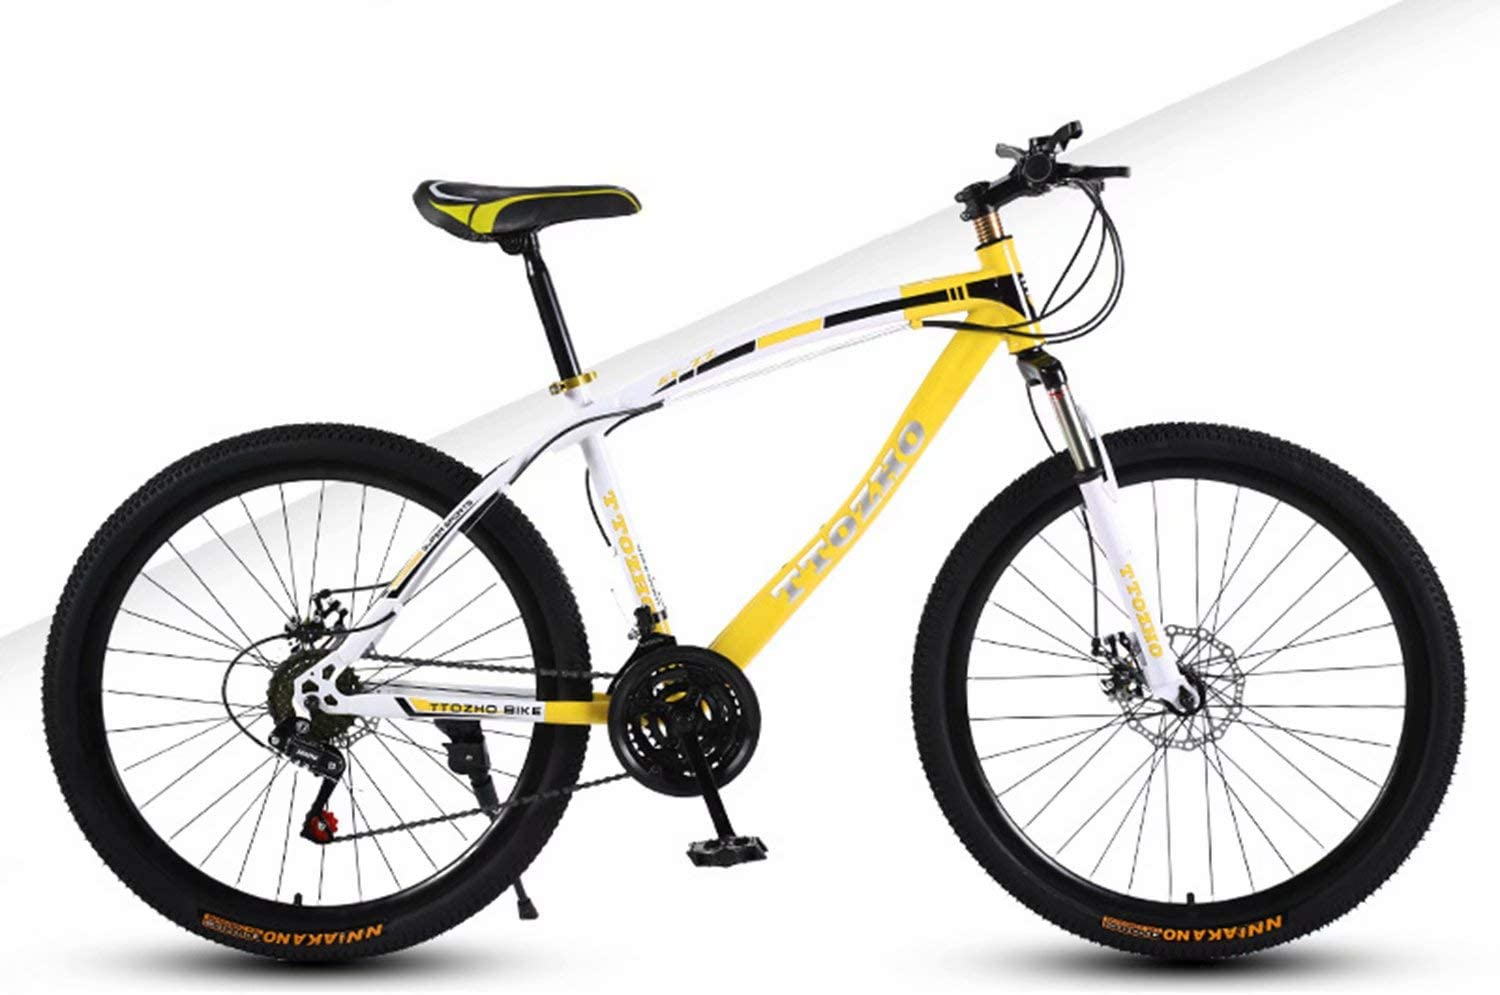 YKMY Mountain bike bicycle adult men and women variable speed bicycle double disc brake double shock absorption ultra light car